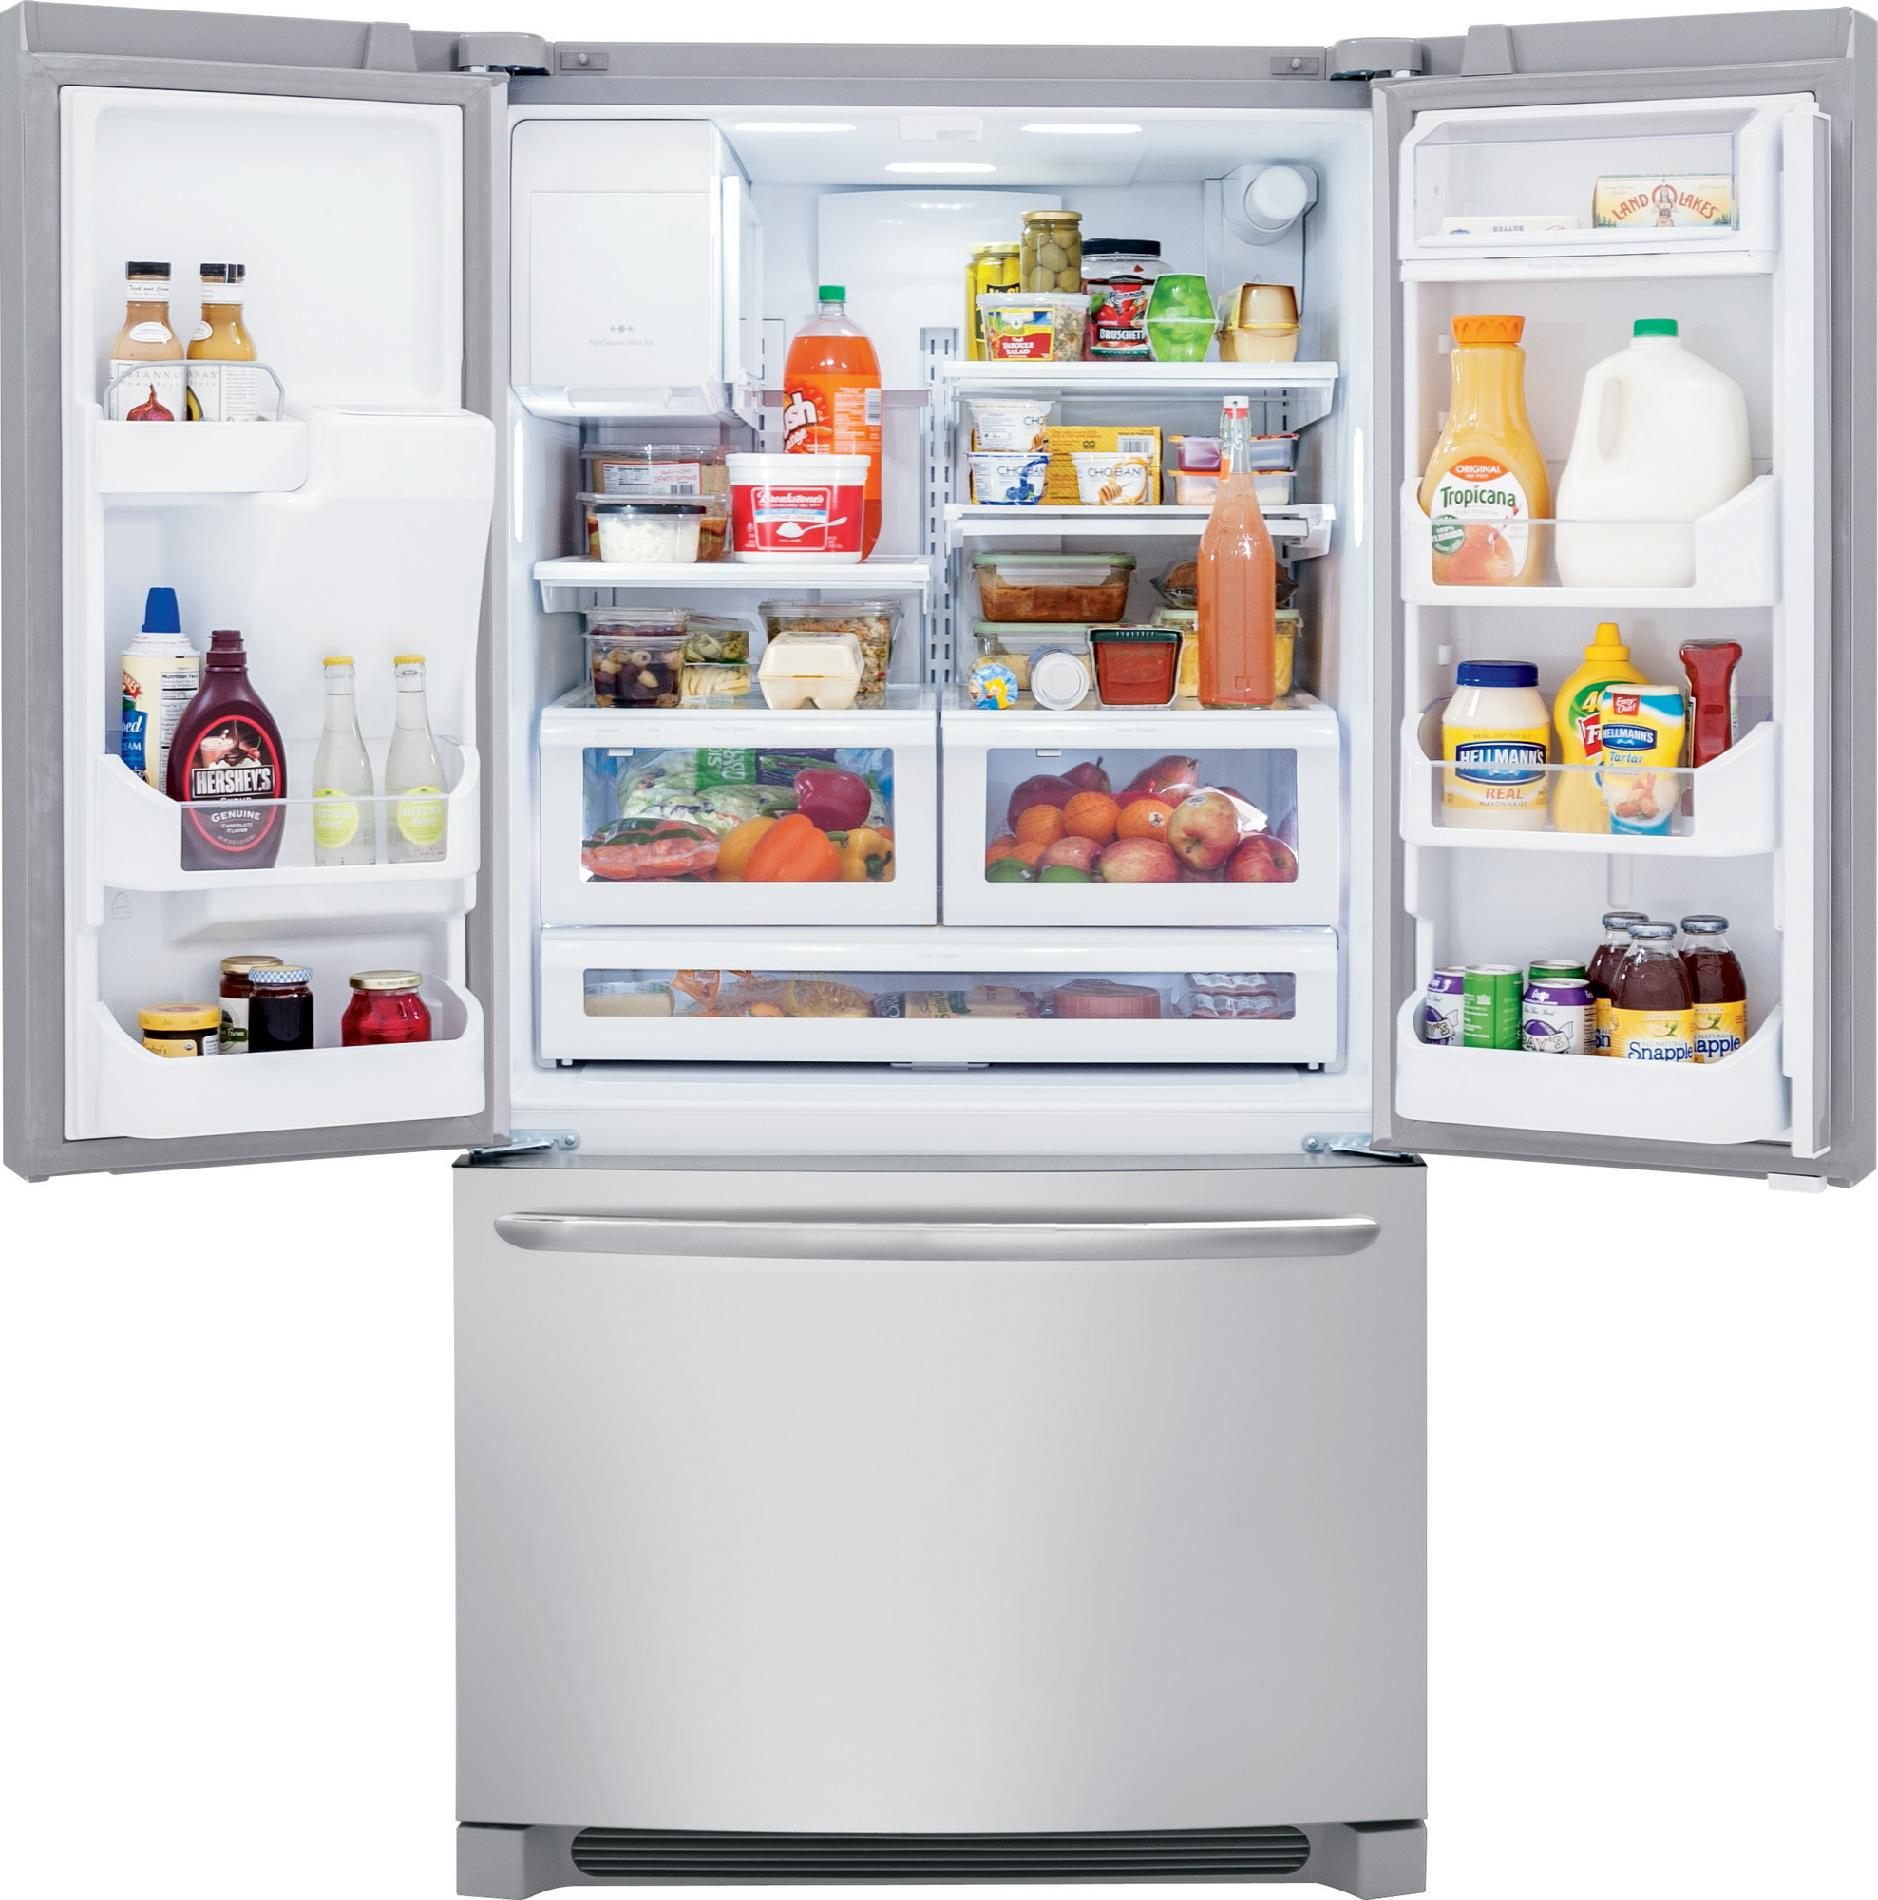 Frigidaire Gallery FGHF2366PF 22.6 cu. ft. Counter-Depth French Door Refrigerator - Stainless Steel